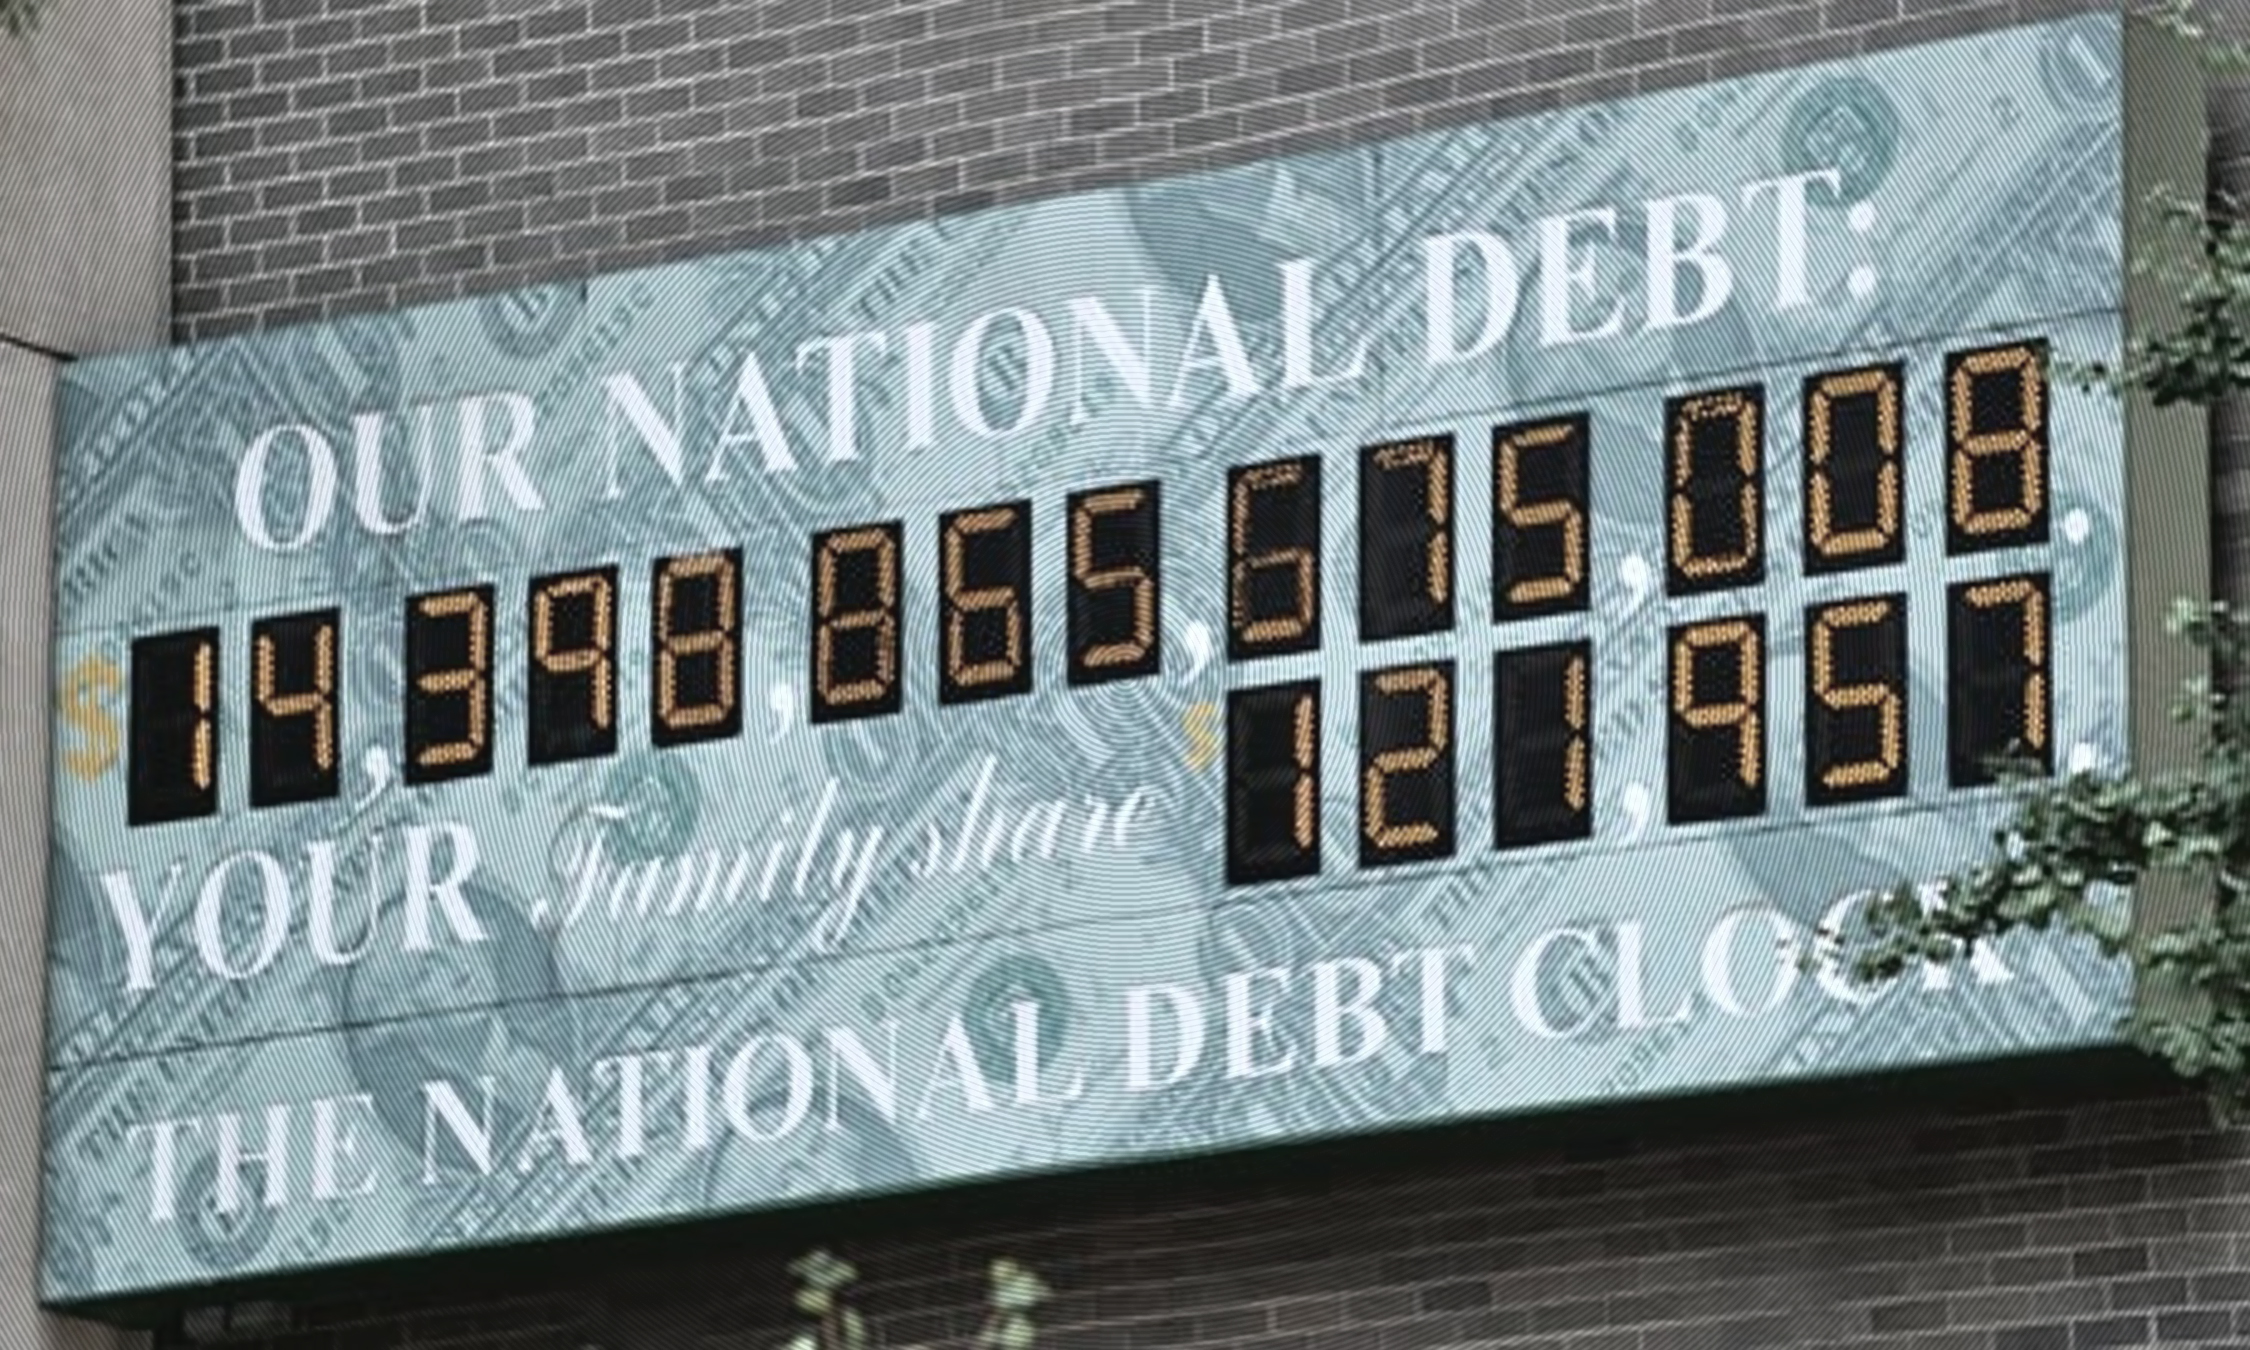 The nation's debt is the people's wealth.